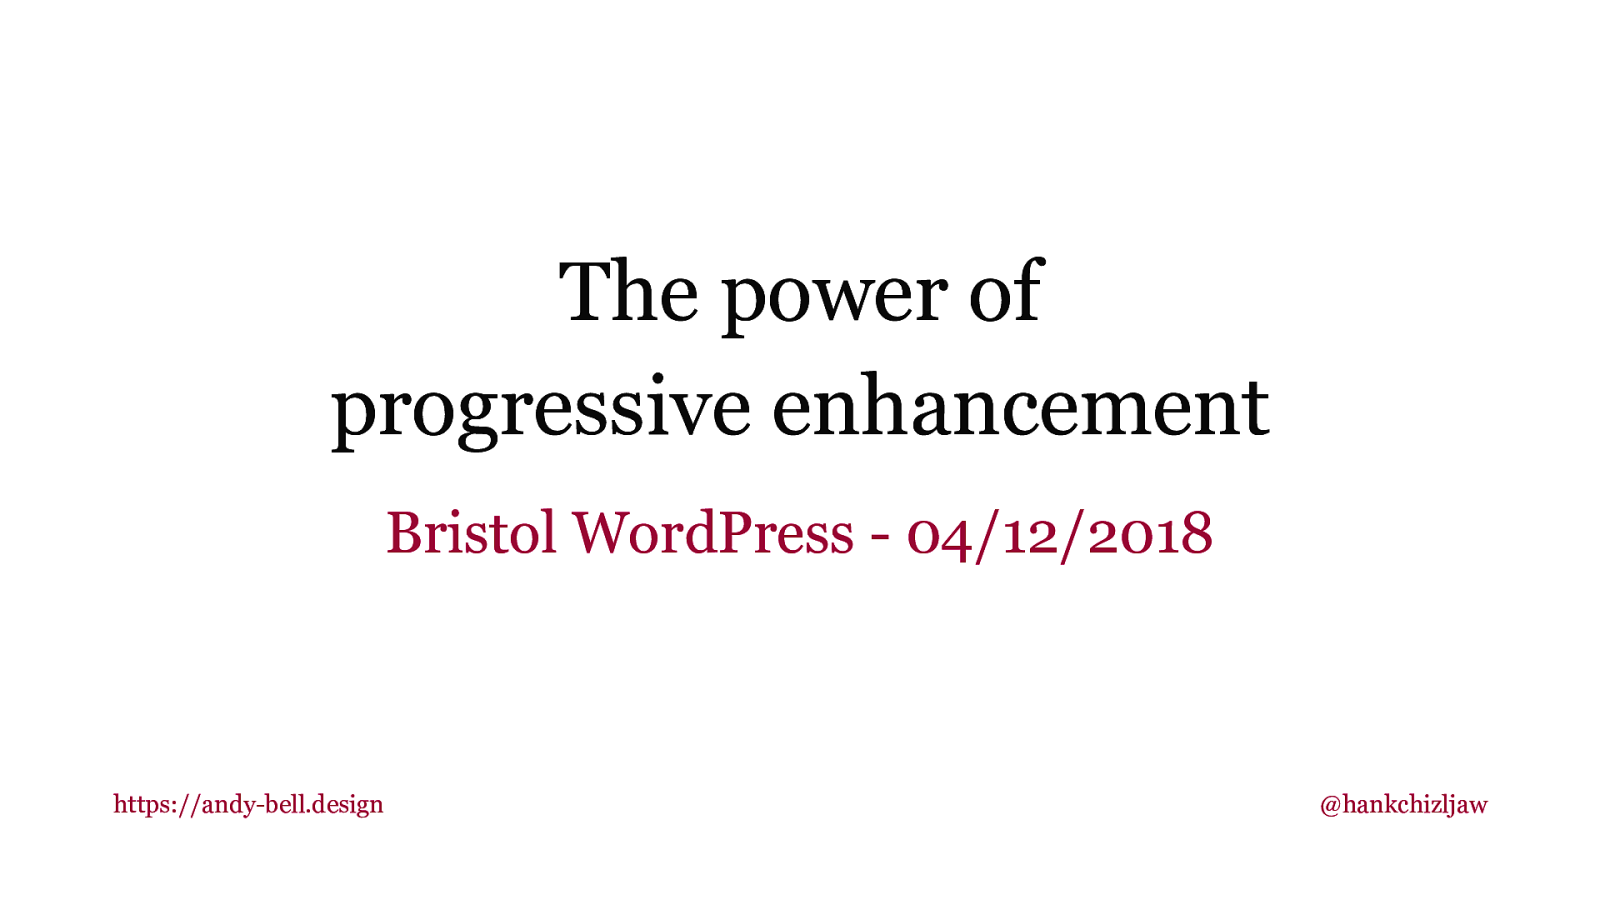 The power of progressive enhancement